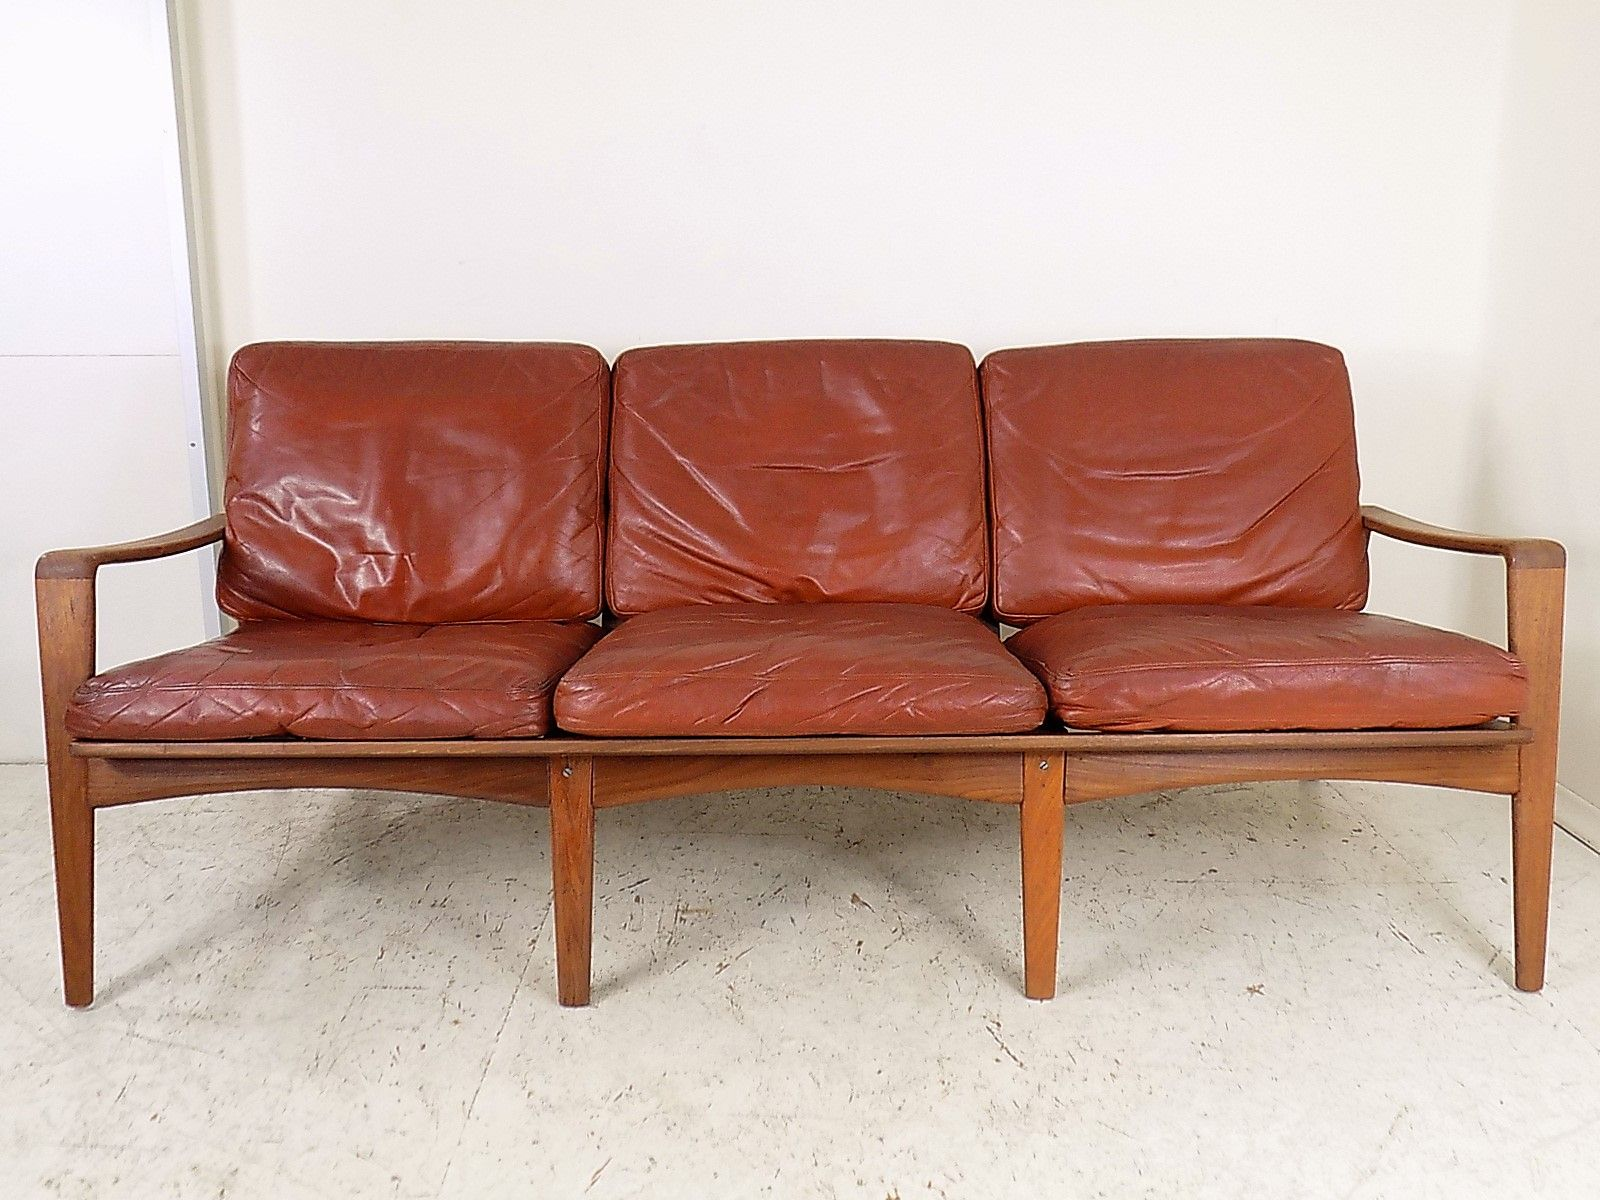 brown leather teak sofa by arne wahl iversen for komfort 1960s for sale at pamono. Black Bedroom Furniture Sets. Home Design Ideas